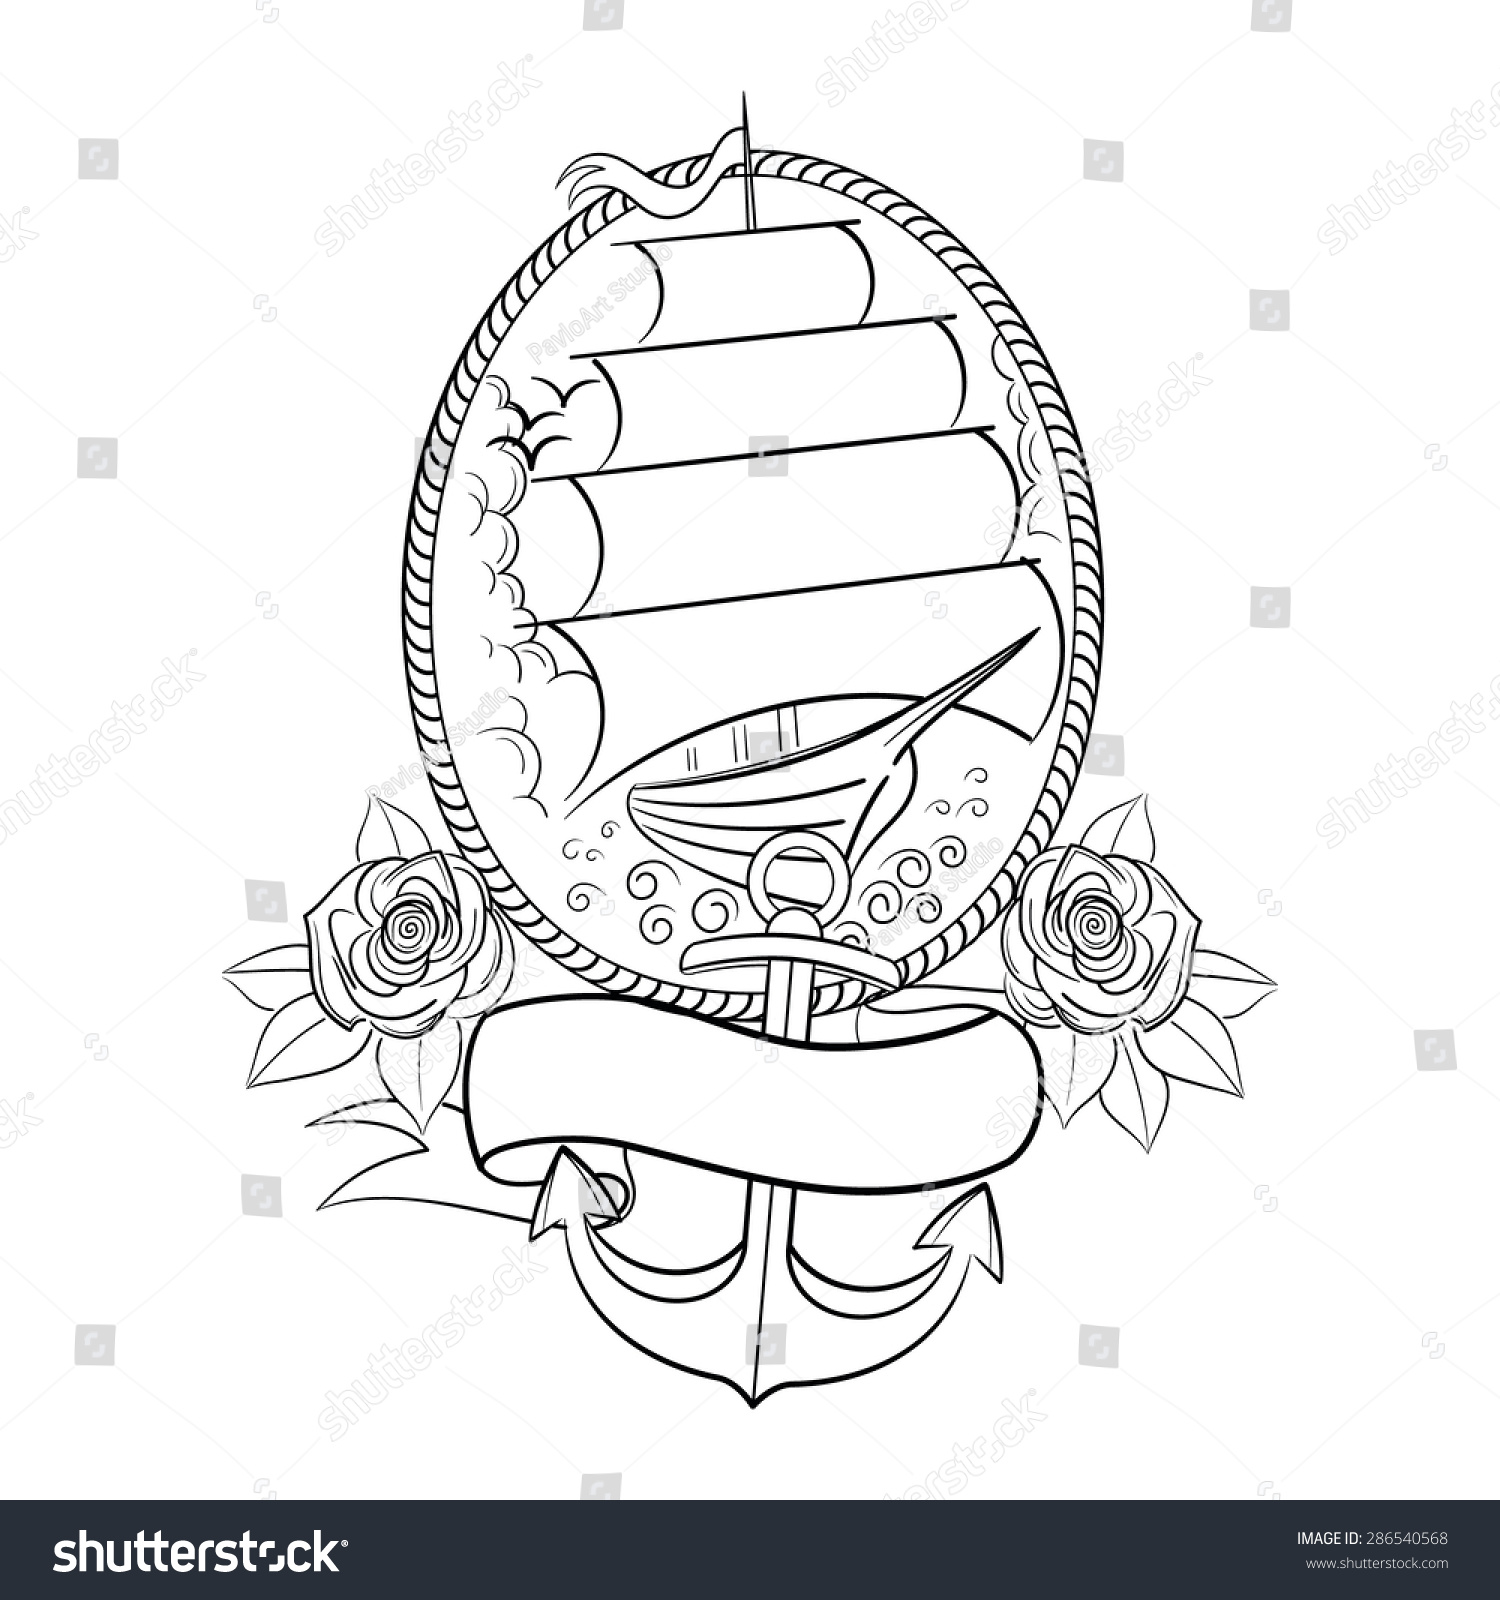 Oldschool Tattoo Style Ship Outline Vector Stock Vector ...